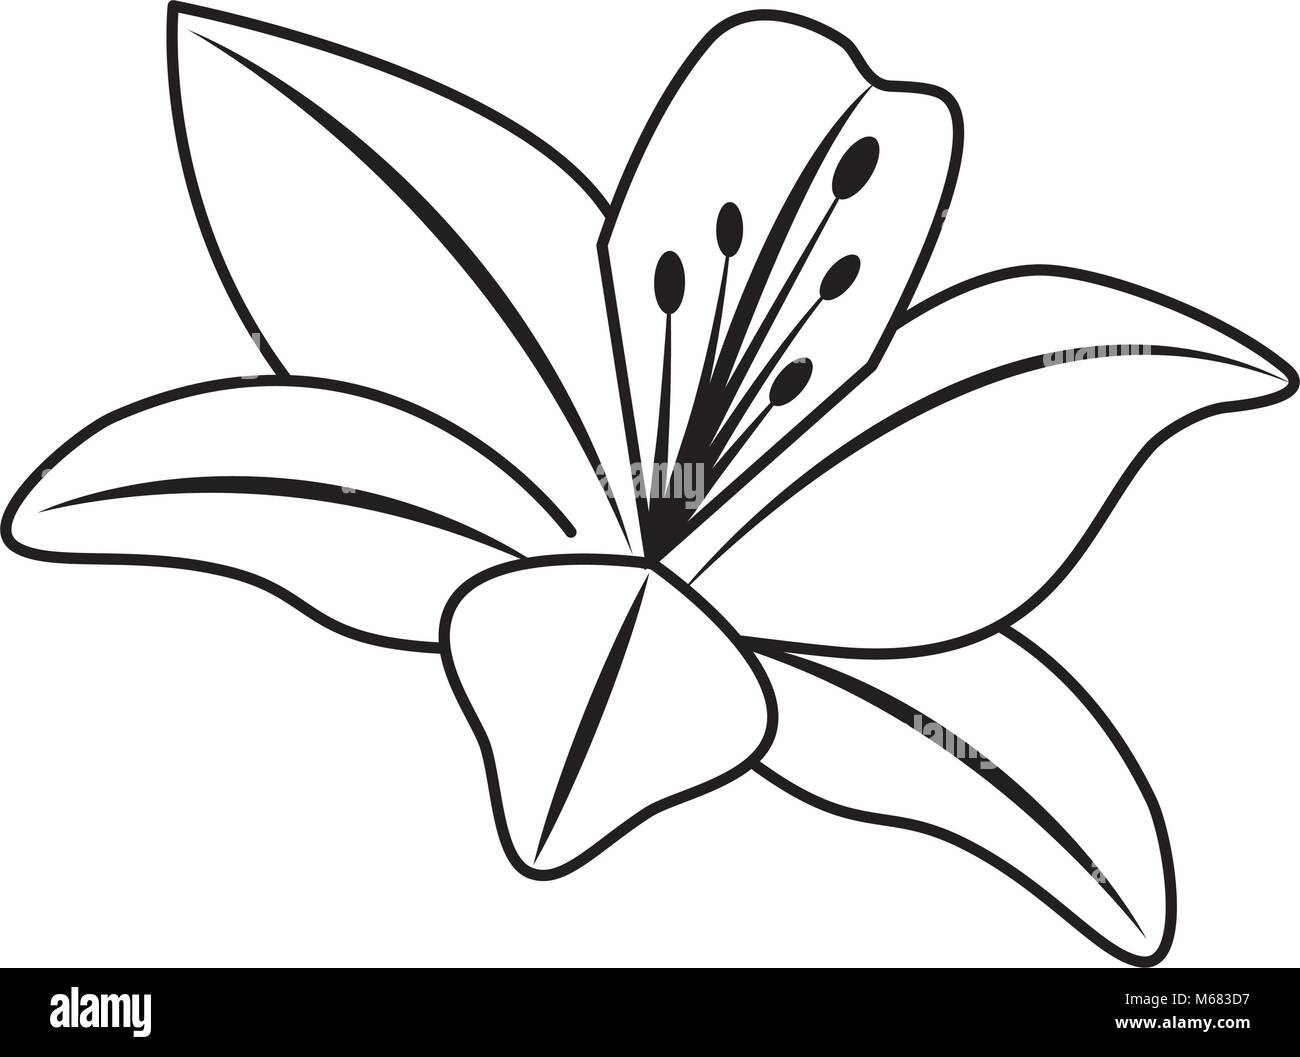 Flower lily delicate decoration floral nature petals vector stock flower lily delicate decoration floral nature petals vector illustration outline desing izmirmasajfo